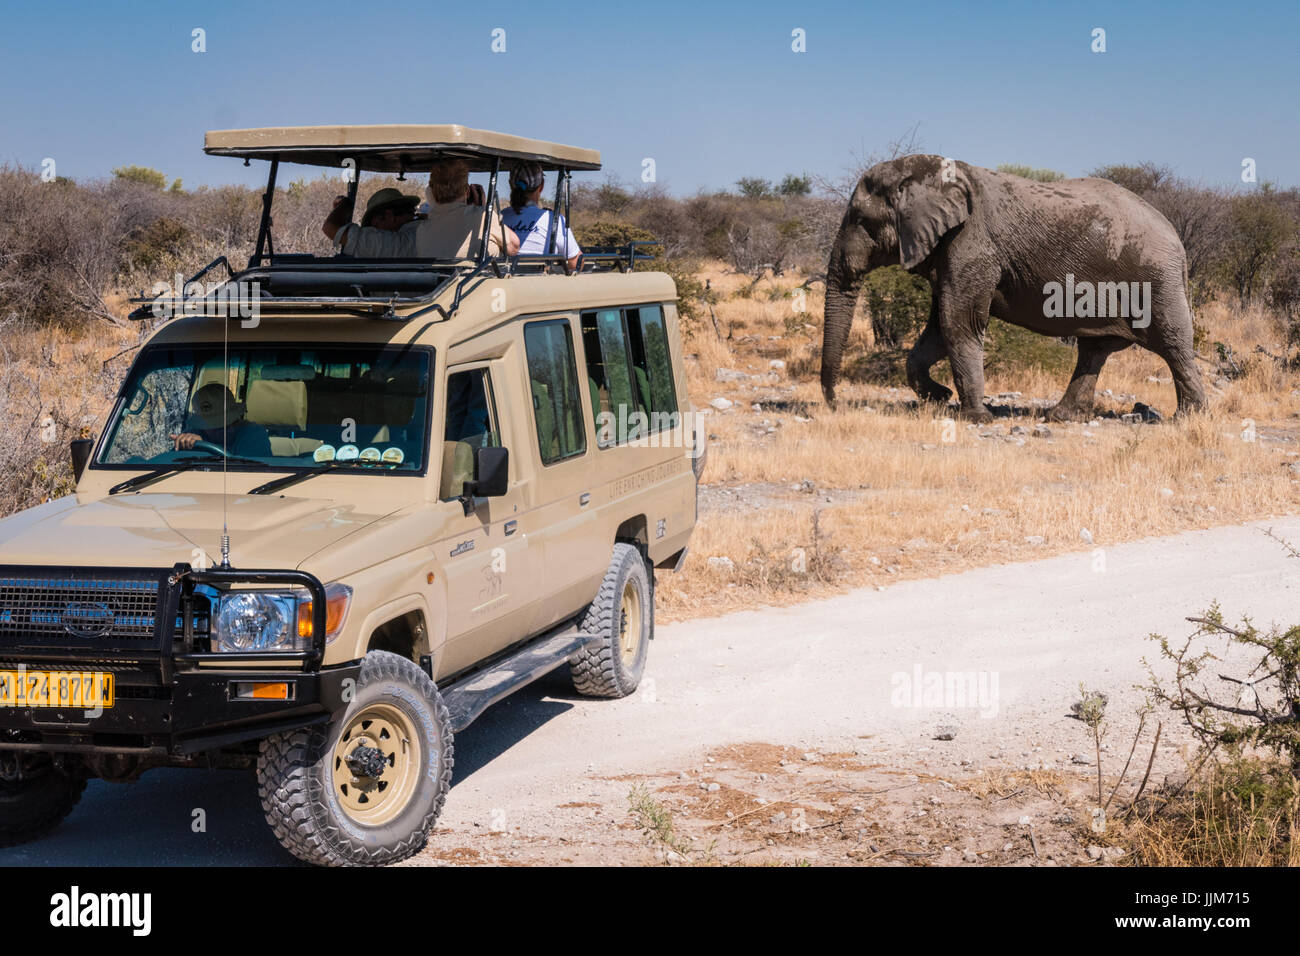 Tourists photographing elephant from a safari vehicle in Etosha National Park, Namibia, Africa - Stock Image